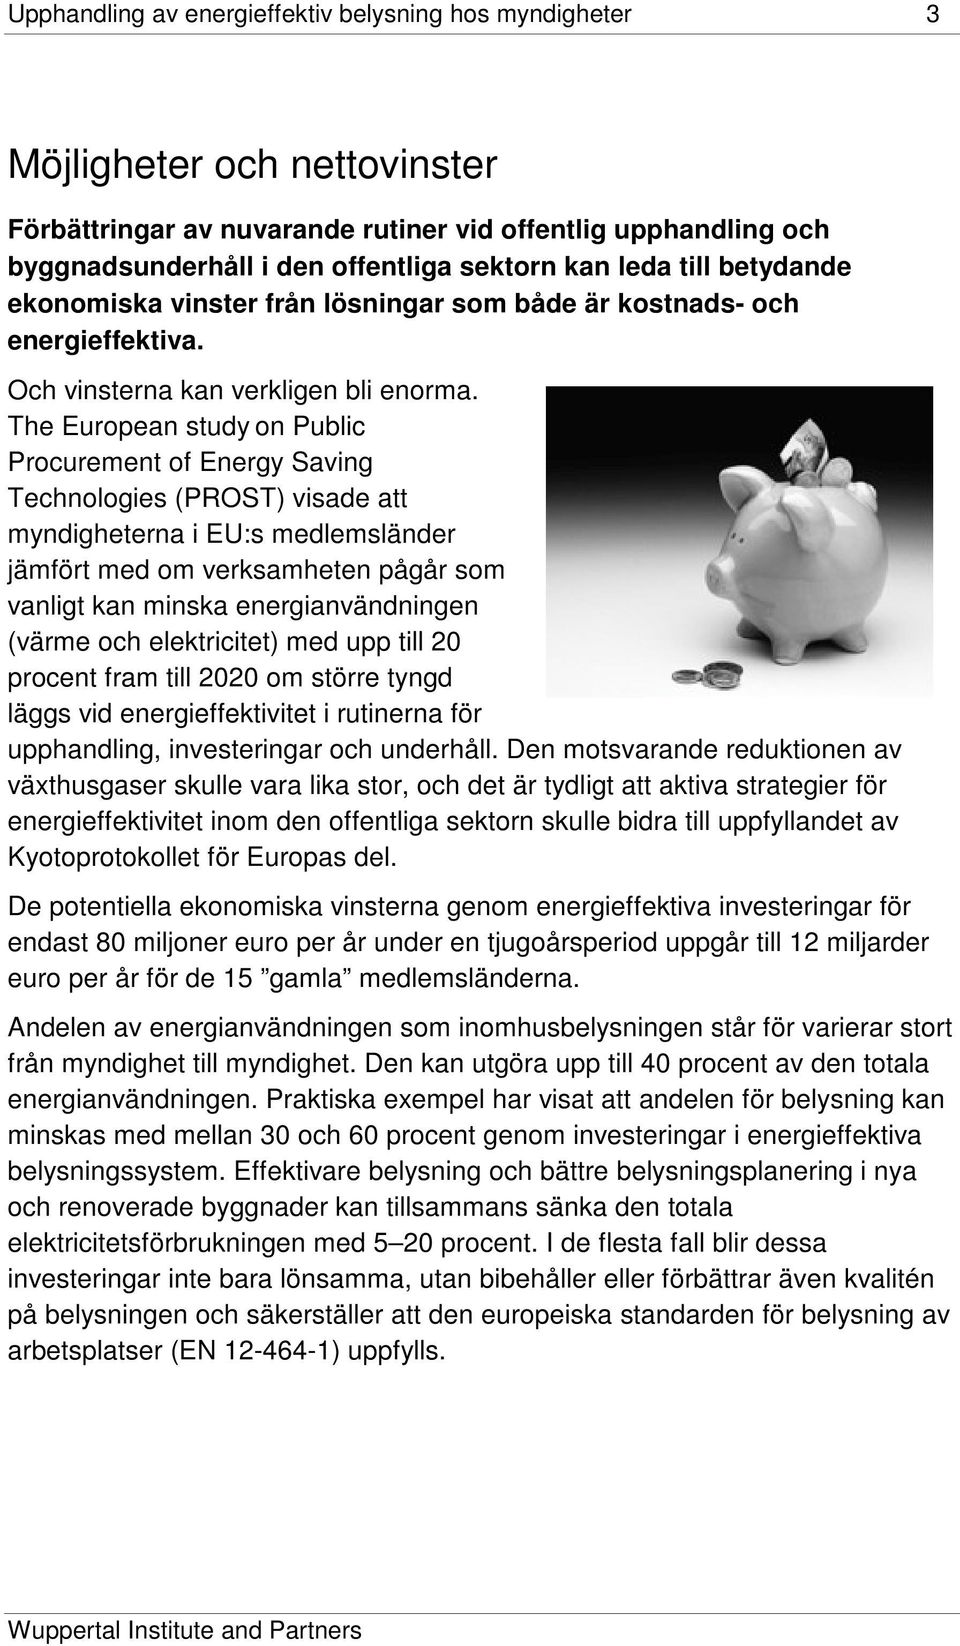 The European study on Public Procurement of Energy Saving Technologies (PROST) visade att myndigheterna i EU:s medlemsländer jämfört med om verksamheten pågår som vanligt kan minska